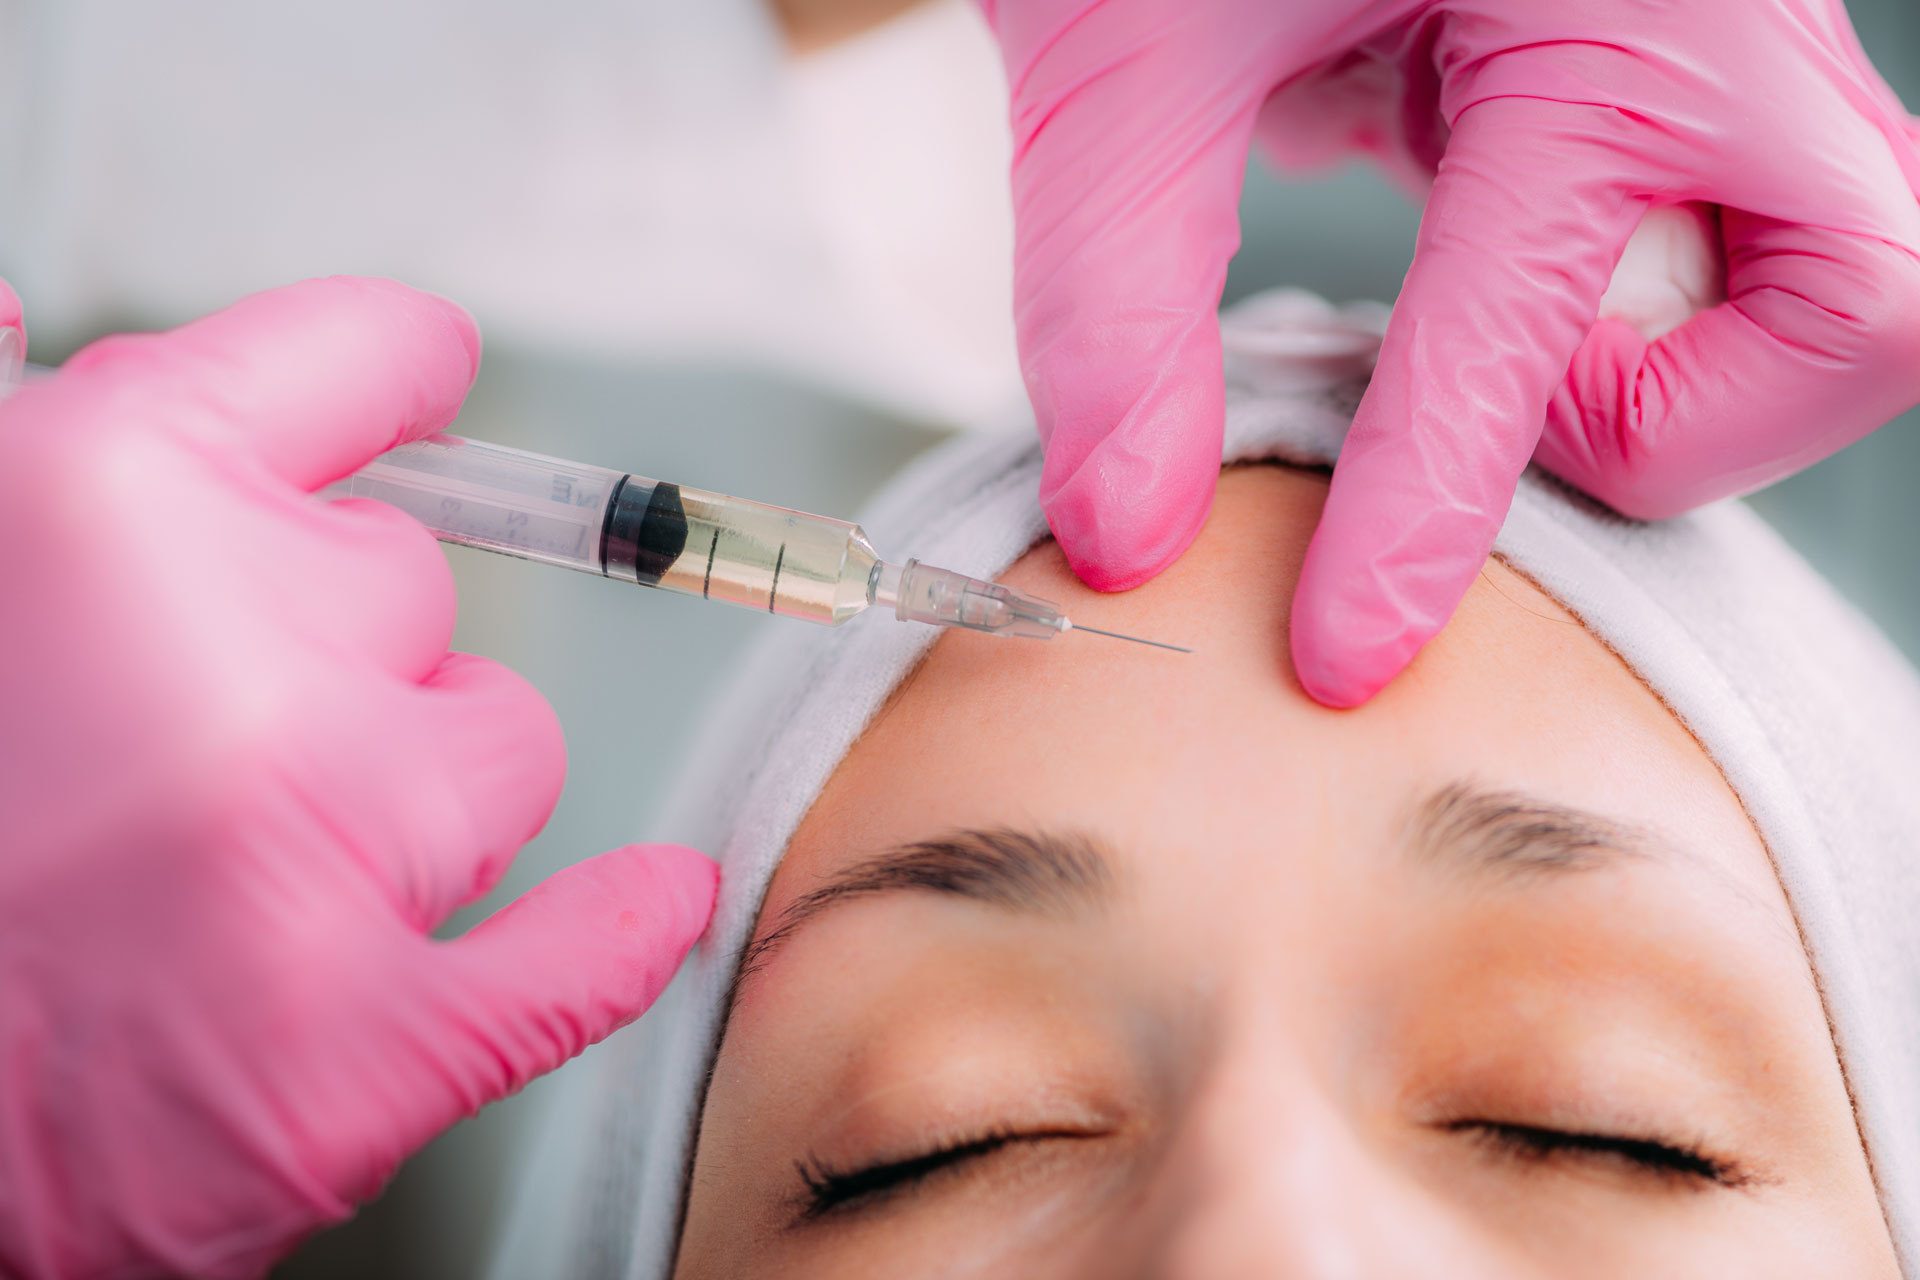 What Do I Need To Know About Dermal Fillers?